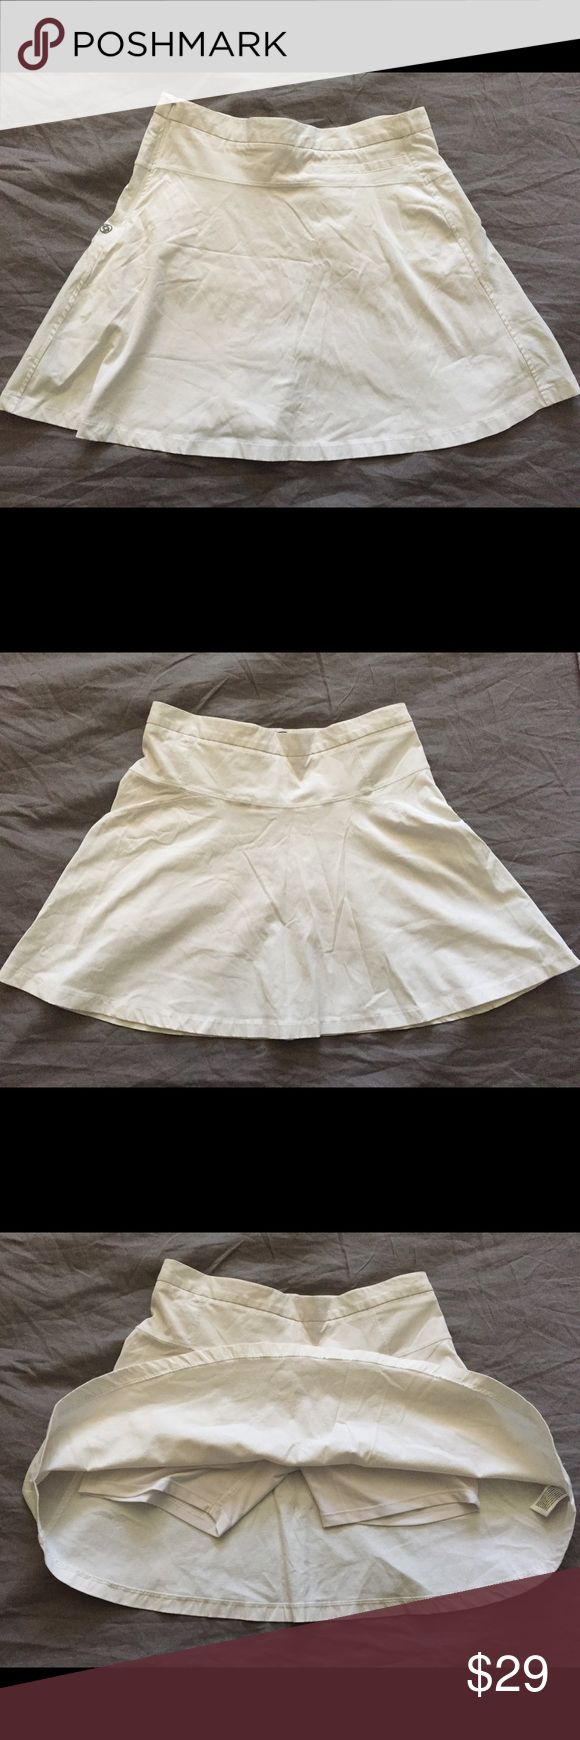 """Women's workout skort by Lija White women's mid-length (about 15"""") tennis skirt with built in spandex short. Perfect for any type of exercise since it's very light weight and breathable. Has a side zipper.  70% nylon 27% cotton 3% elastane Shorts Skorts"""